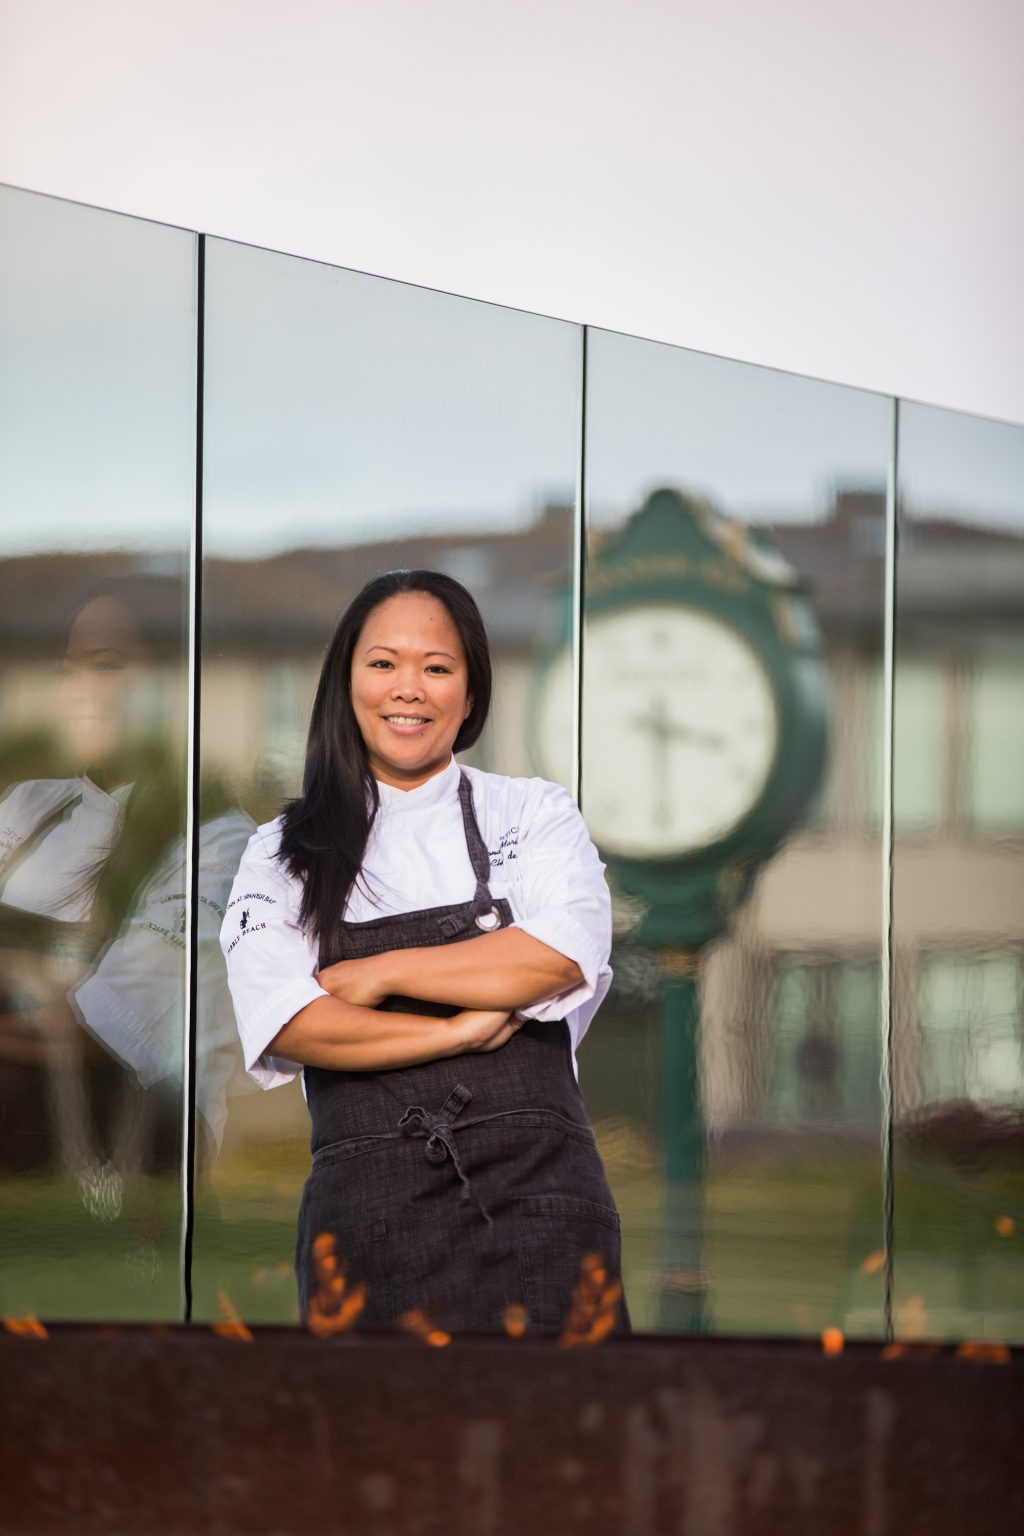 Chef Anna Marie Bayonito poses on the patio of STICKS restaurant at The Inn at Spanish Bay.